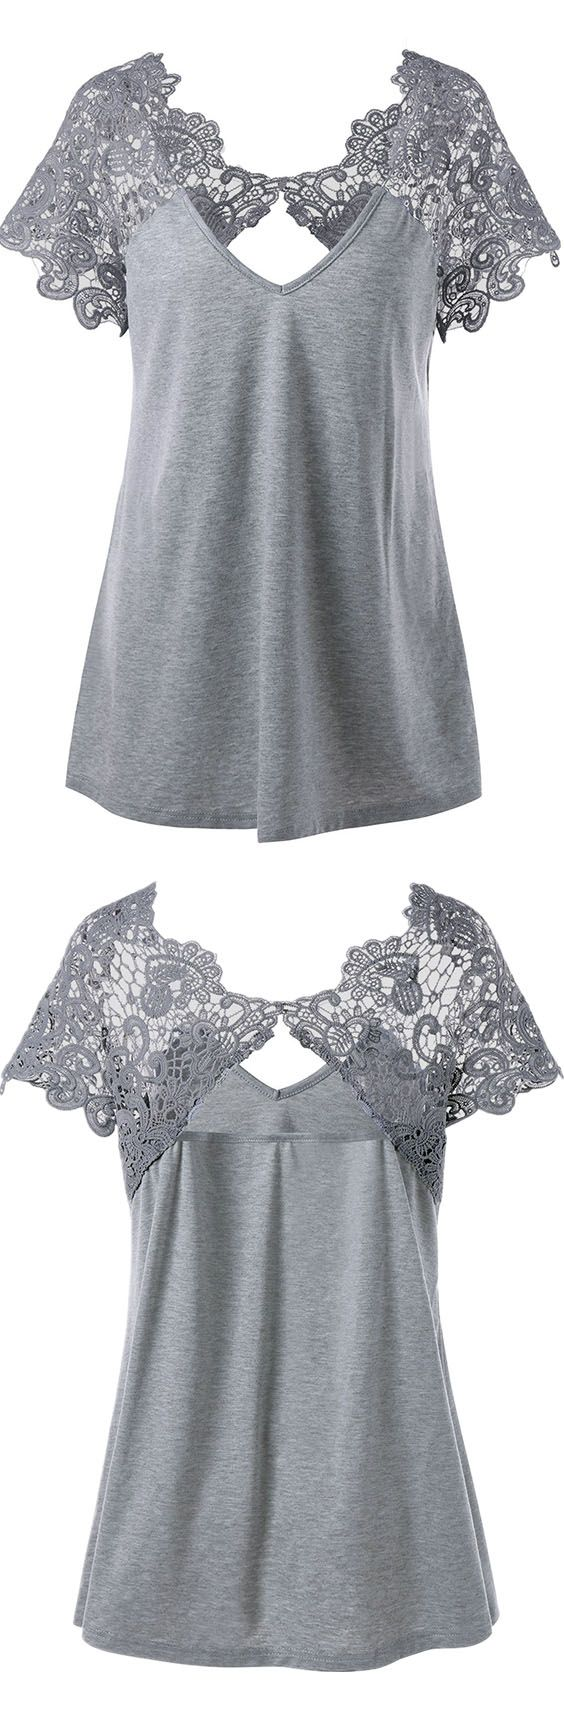 $12.93 Plus Size Cutwork Lace Trim T-Shirt - Gray